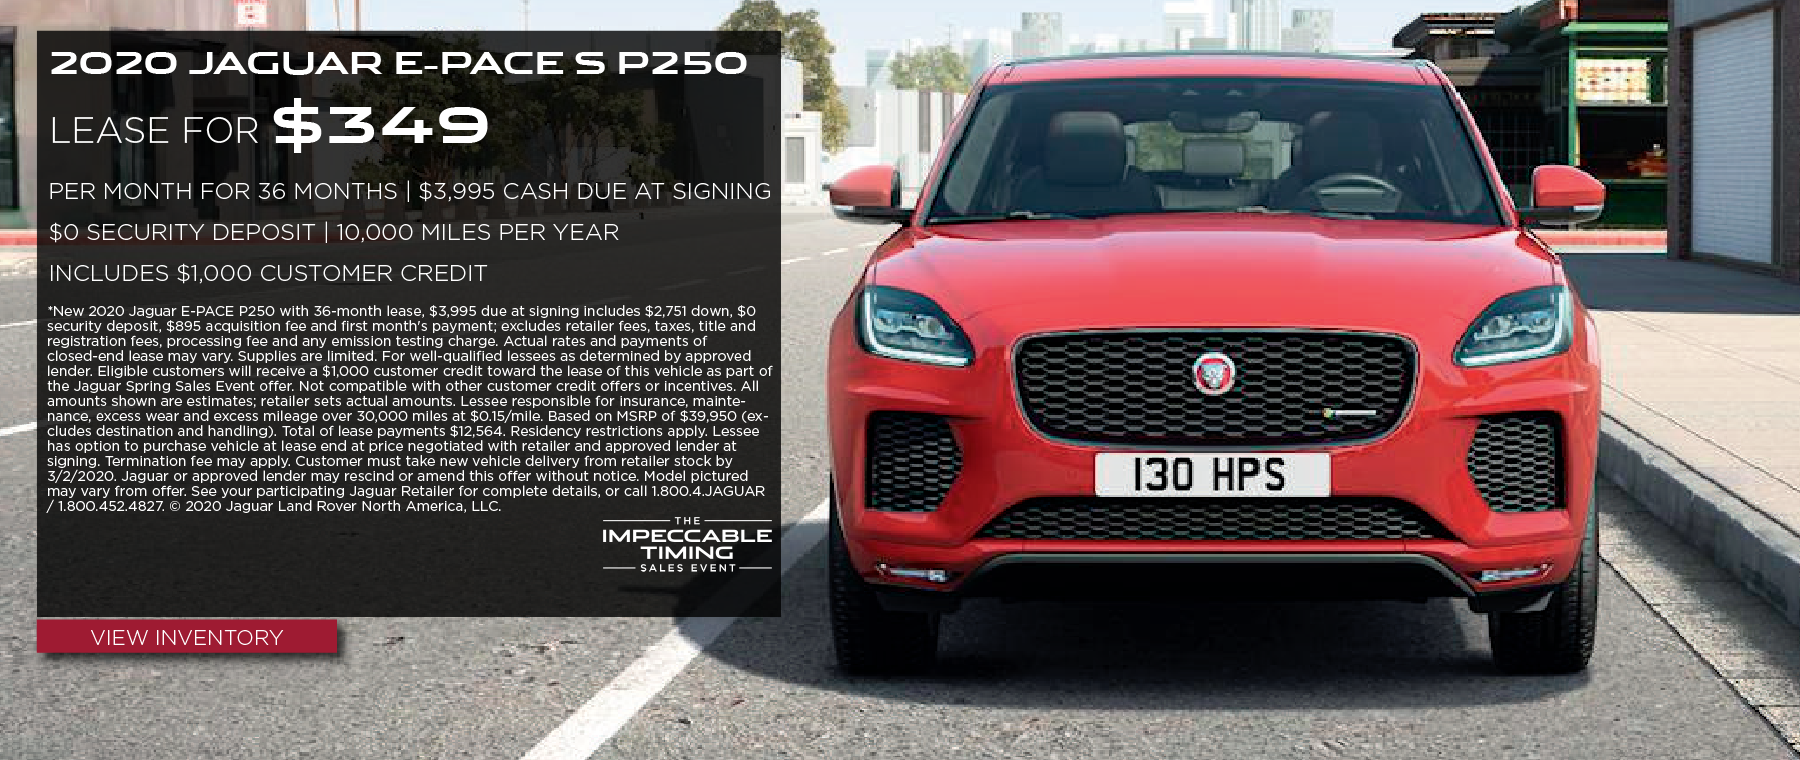 2020 JAGUAR E-PACE S P250_$349 PER MONTH_36 MONTH LEASE TERM_$0 SECURITY DEPOSIT_$3,995 + TAX, LICENSE AND FEES DUE AT SIGNING_10,000 MILES PER YEAR_EXPIRES JANUARY 31, 2020_VIEW INVENTORY_WHITE JAGUAR E-PACE DRIVING NEAR HILL OVERLOOKING THE BEACH WITH SURFBOARDS ON VEHICLE ROOF